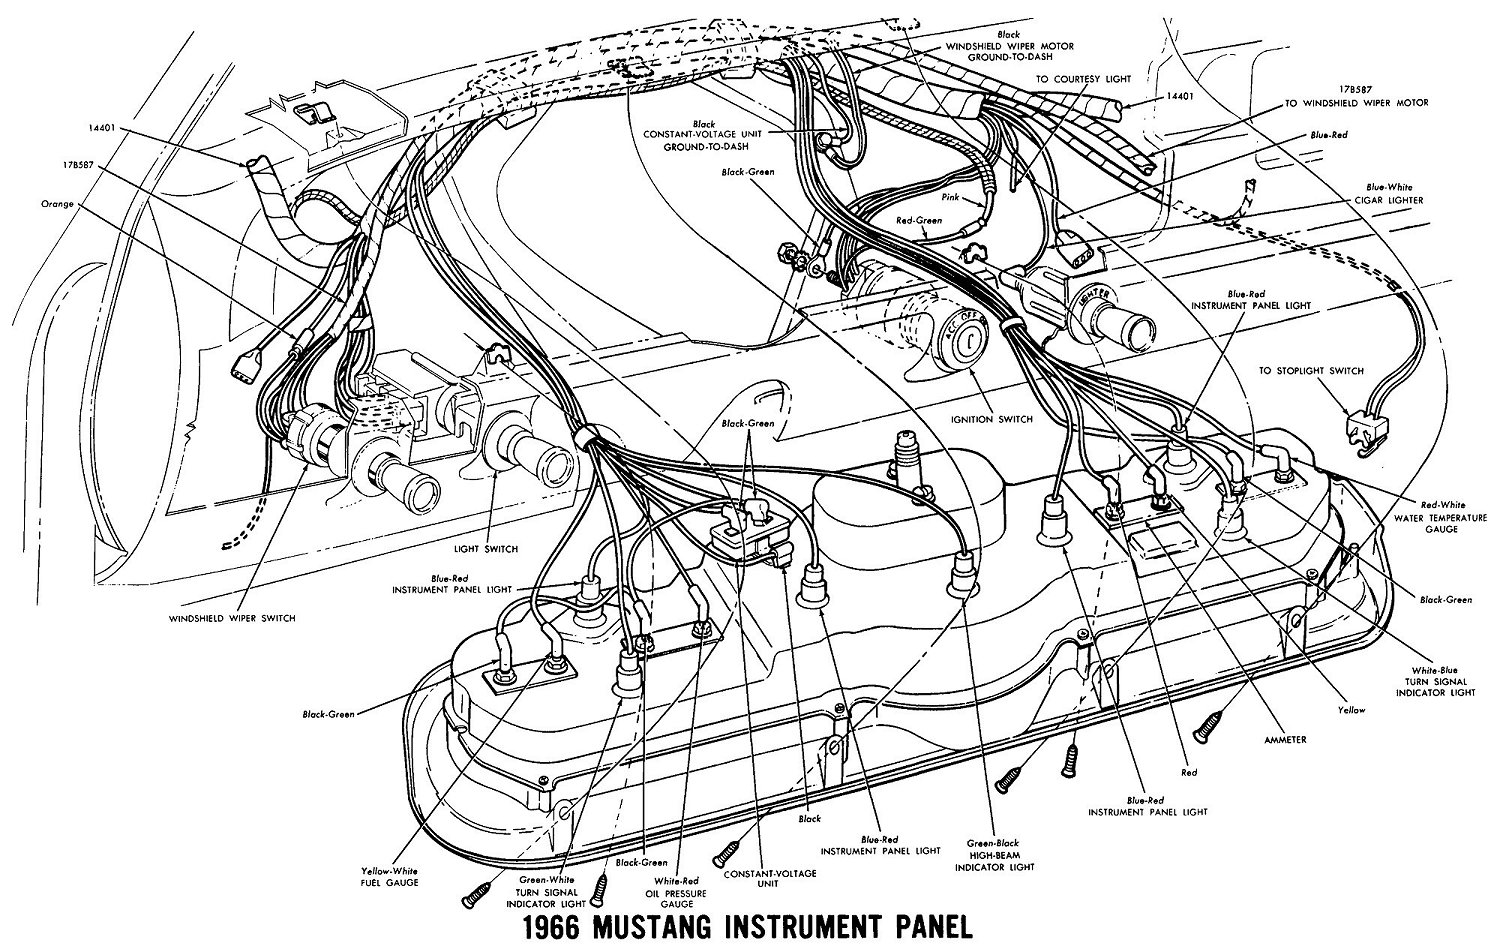 66instr 1966 mustang wiring diagrams average joe restoration 1966 mustang wiring diagrams electrical schematics at nearapp.co